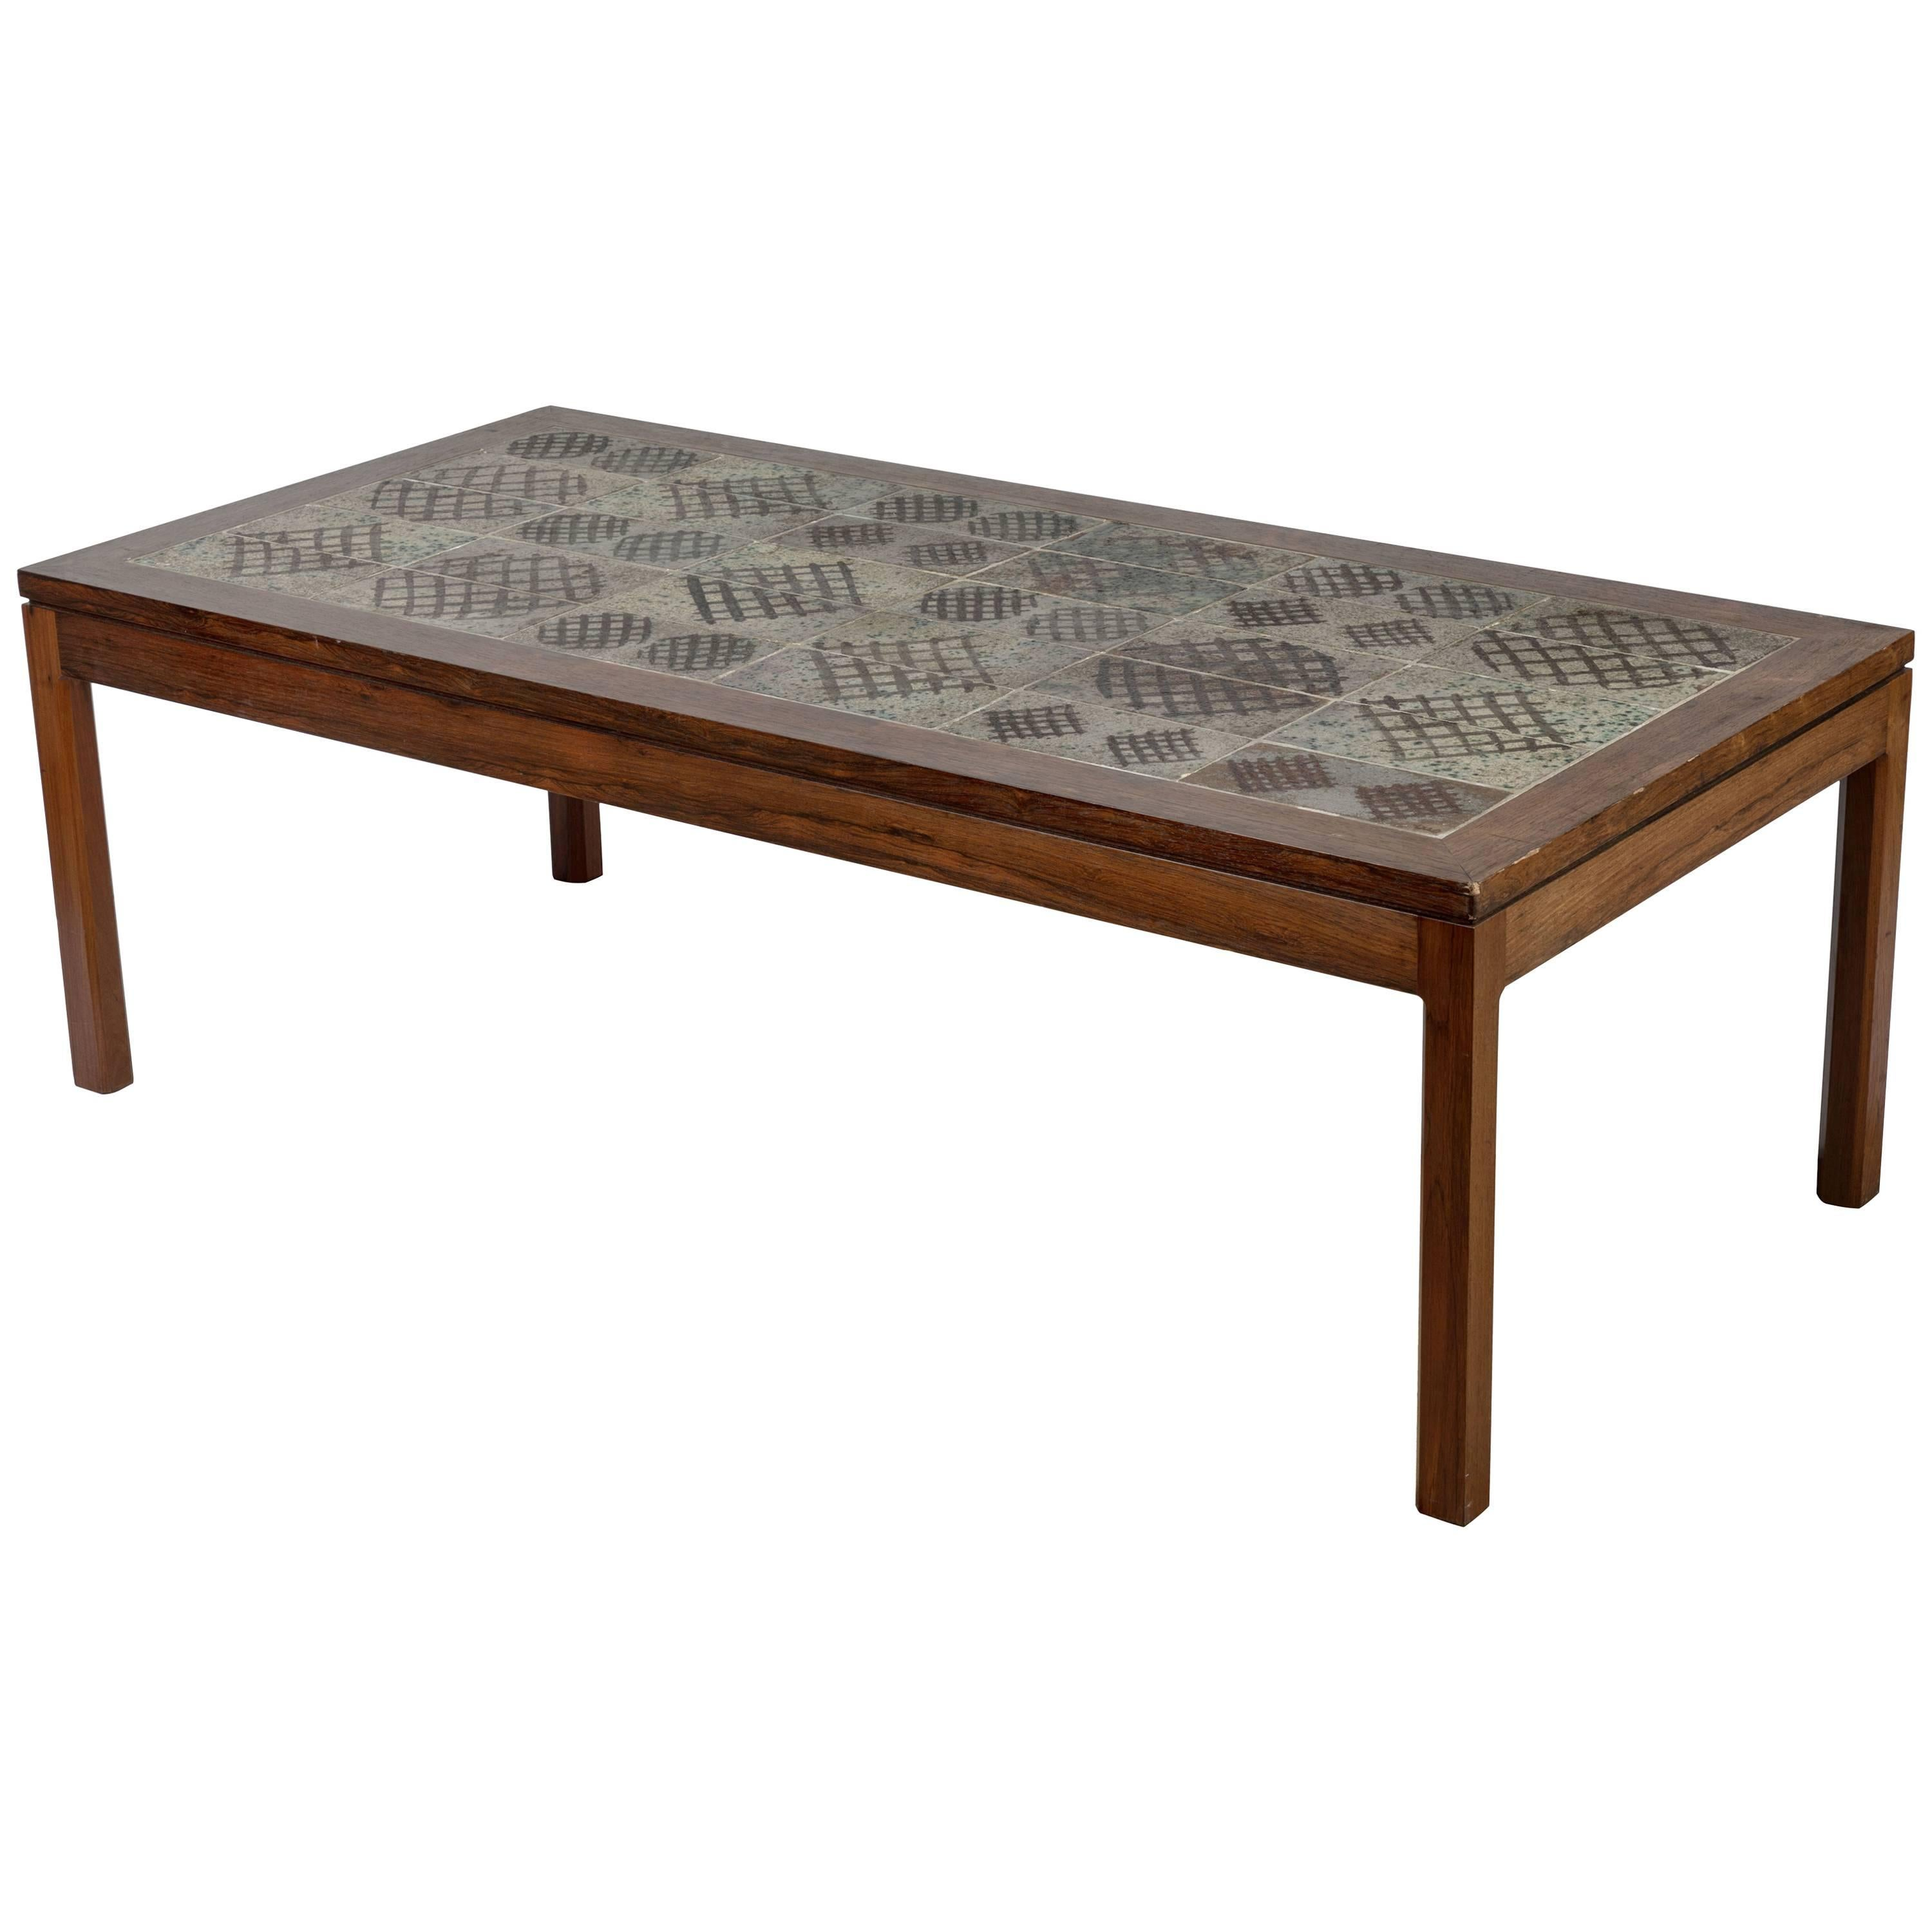 Midcentury Tile Top Coffee Table